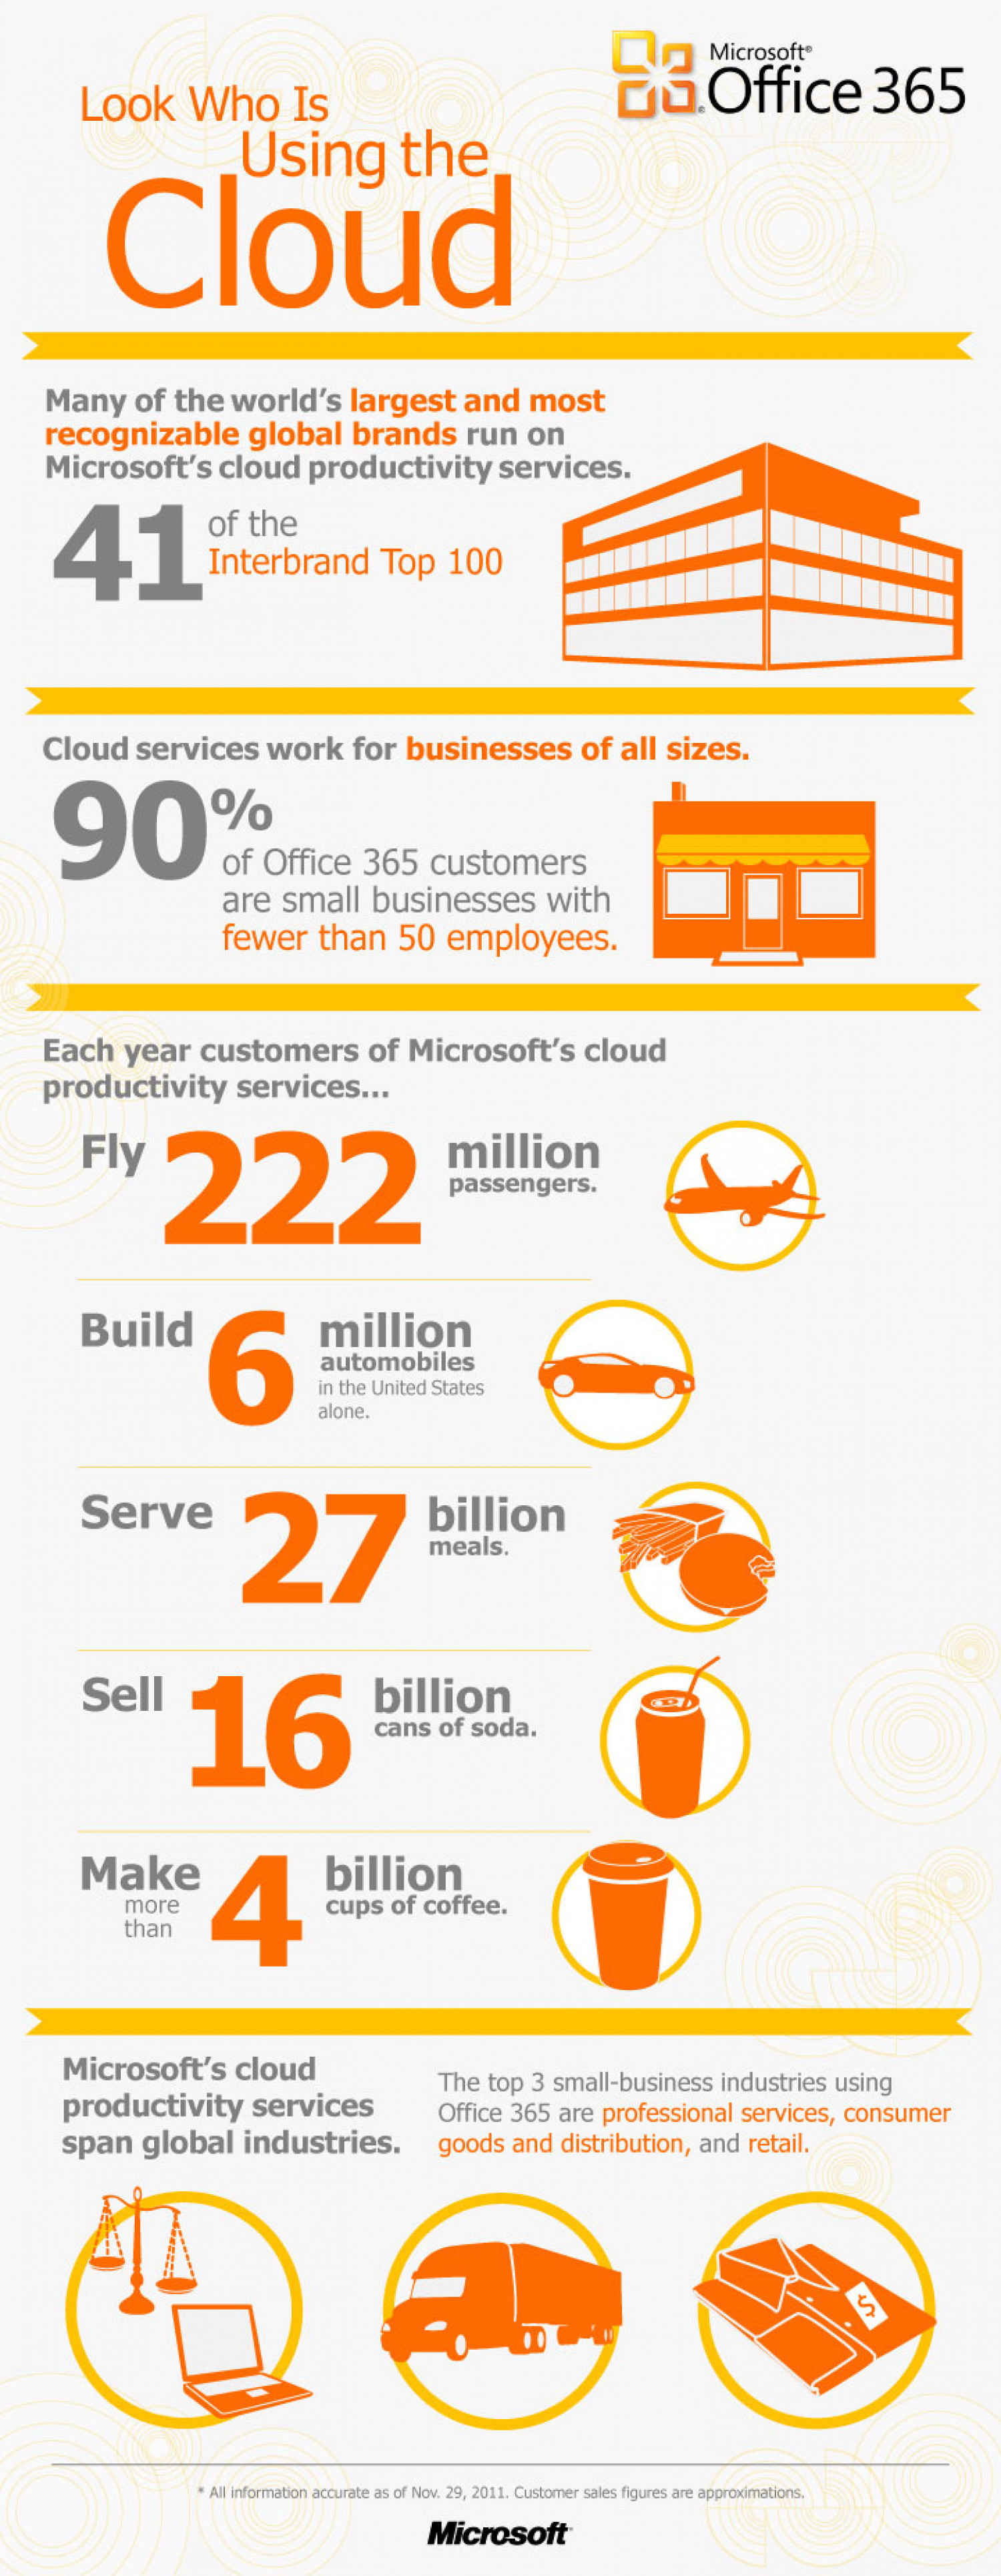 Look Who Is Using The Cloud Infographic